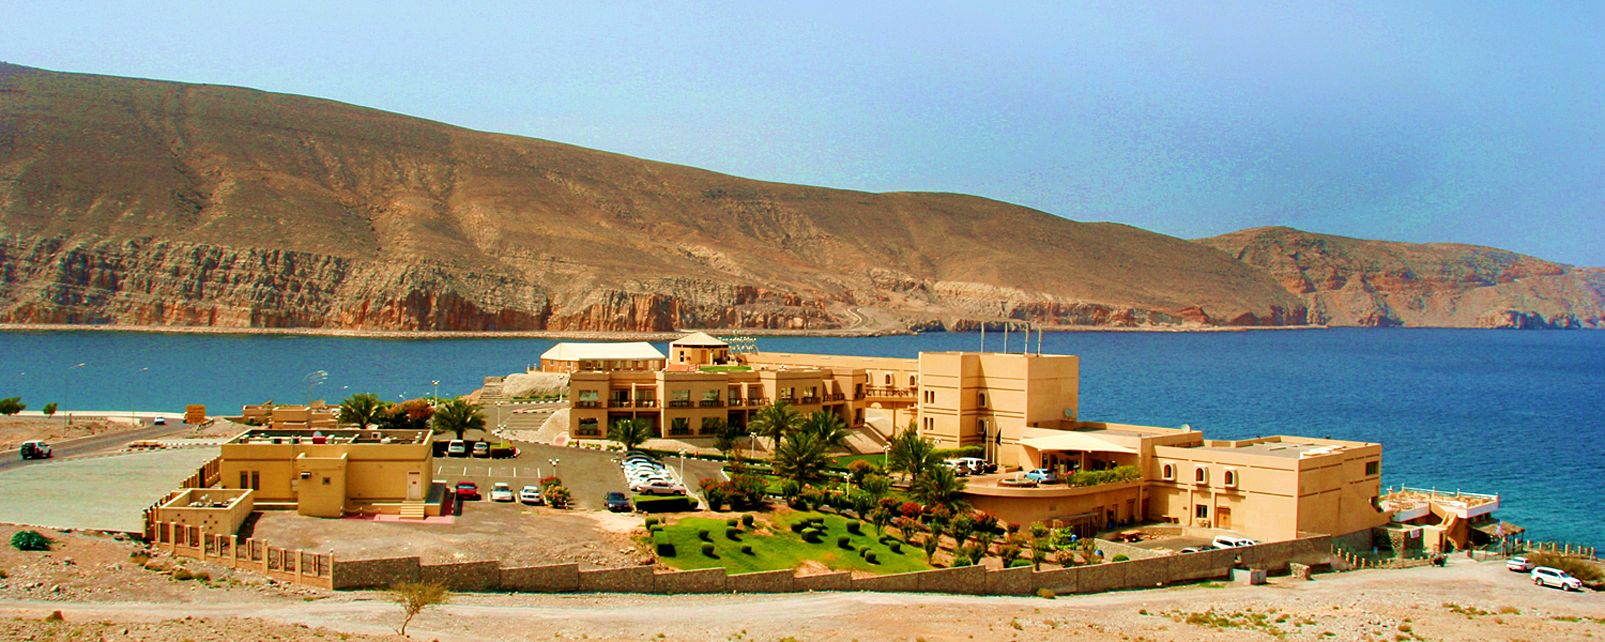 Hotel Atana Resort Khasab in